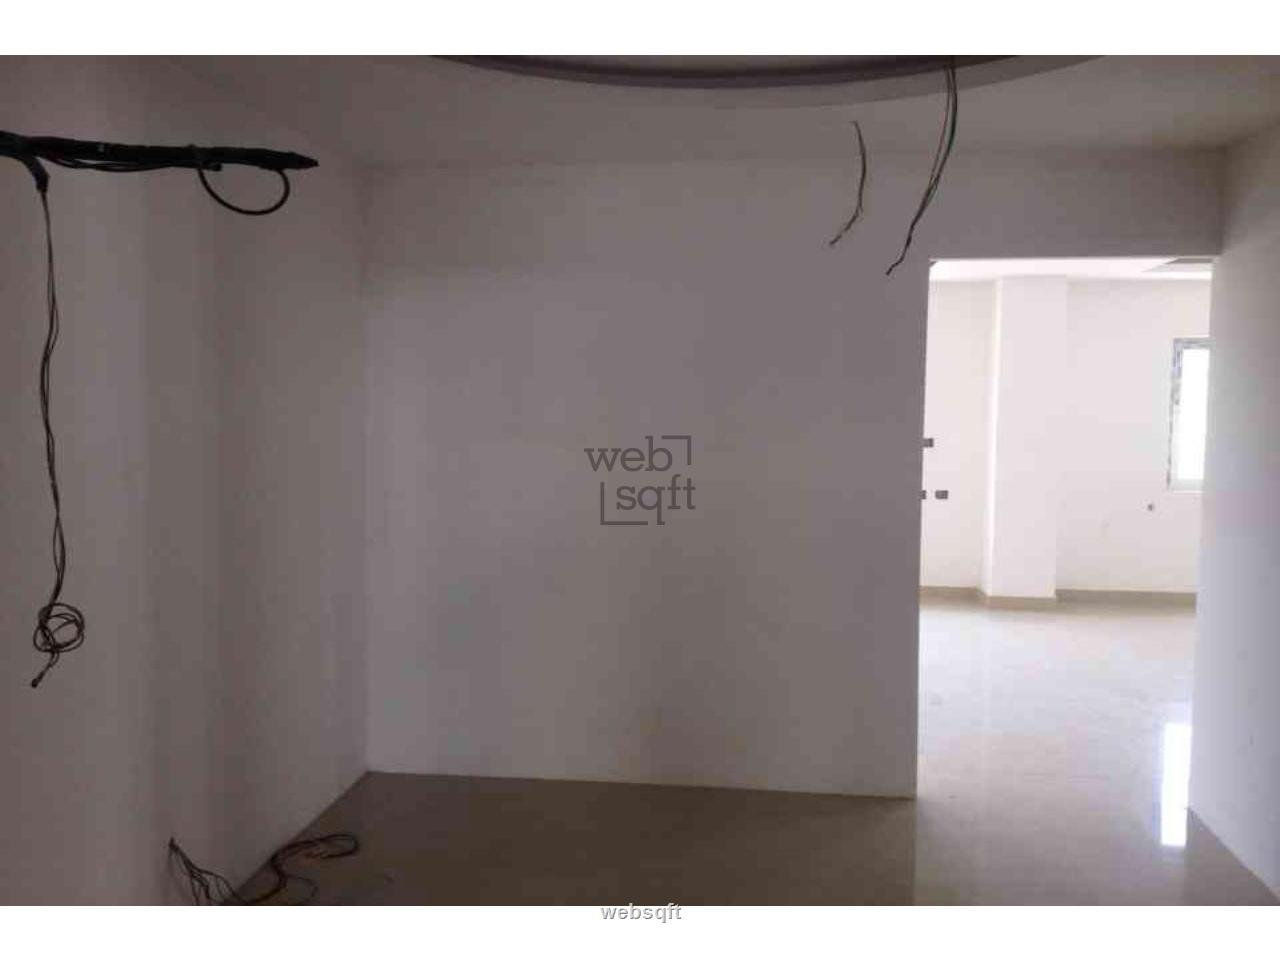 Websqft - Commercial Office Space - Property for Sale - in 1300Sq-ft/Gachibowli at Rs 6500000